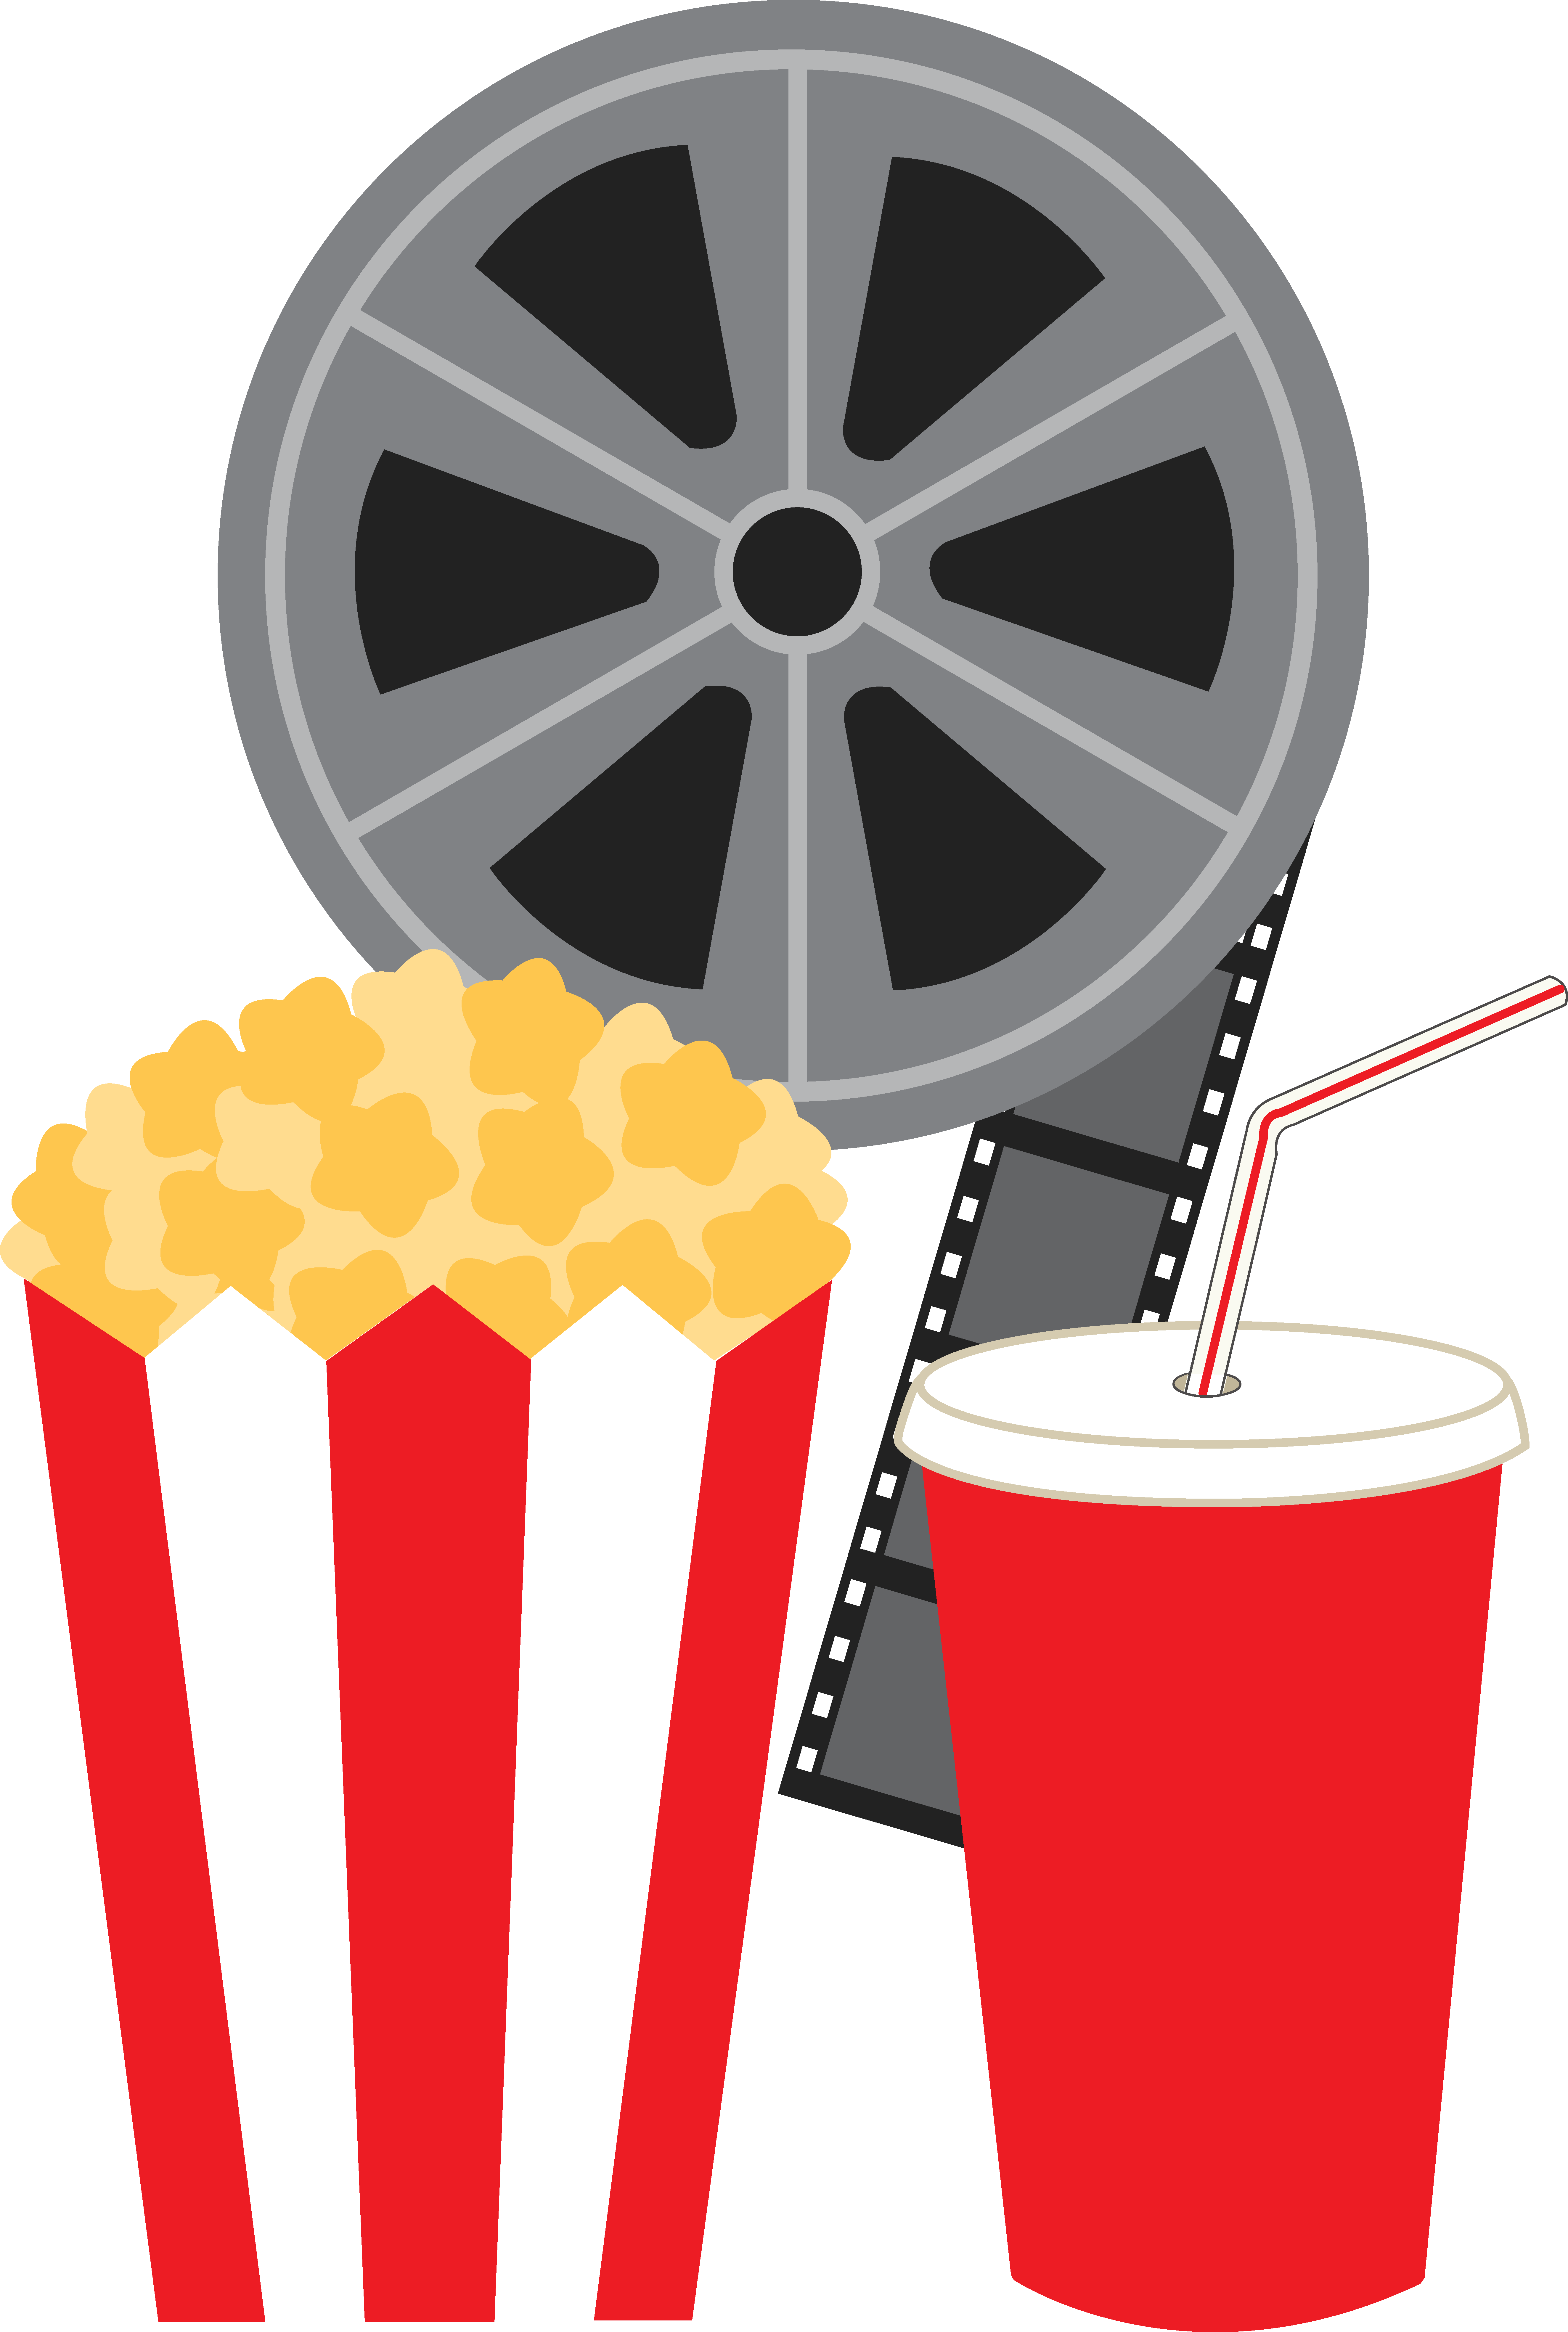 Movie video clip downloads